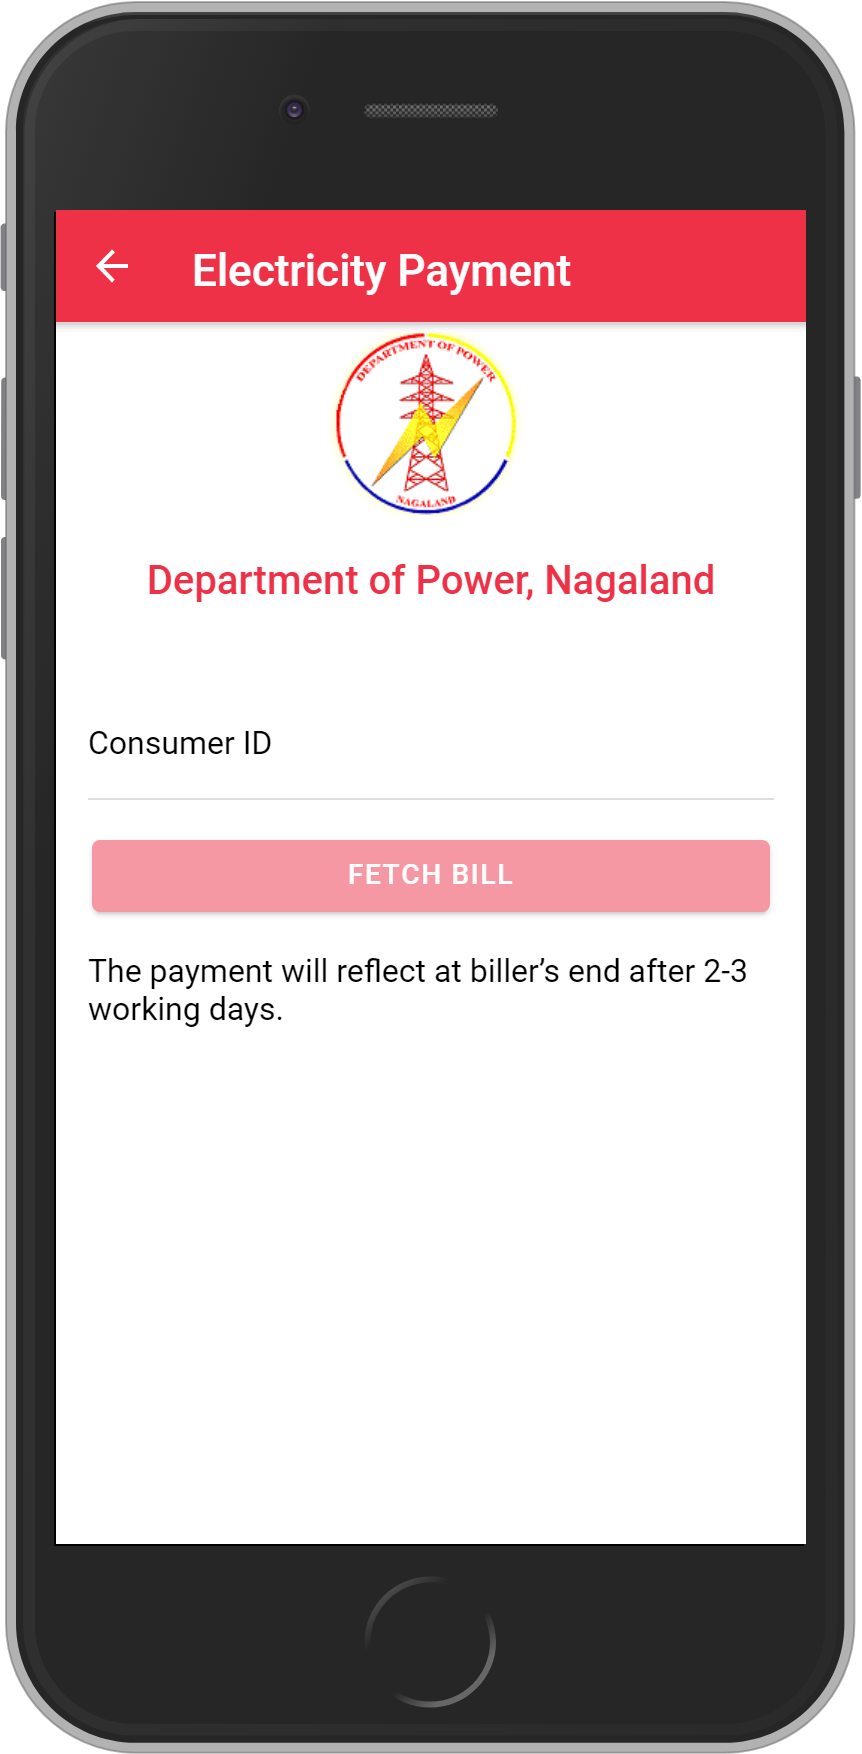 Get UNLIMITED <b>0.1%</b> CASHBACK on Department of Power, Nagaland Bill Payment.